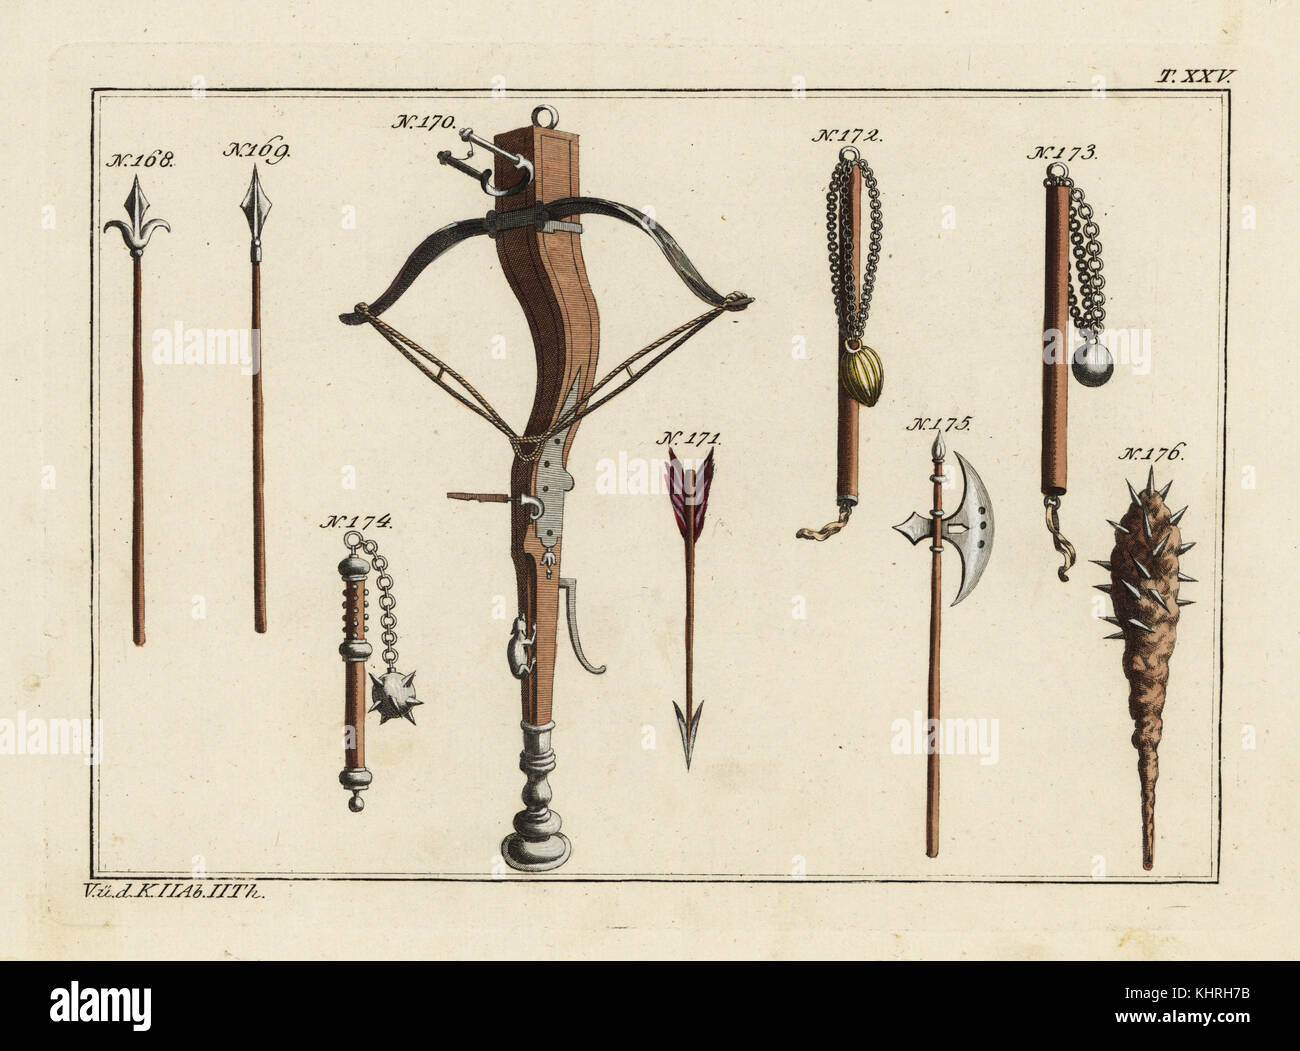 Spears of the Franks, 168,169, crossbow 170, arrow 171, flails or chain maces 172-174, hatchet 175, and Morgenstern - Stock Image